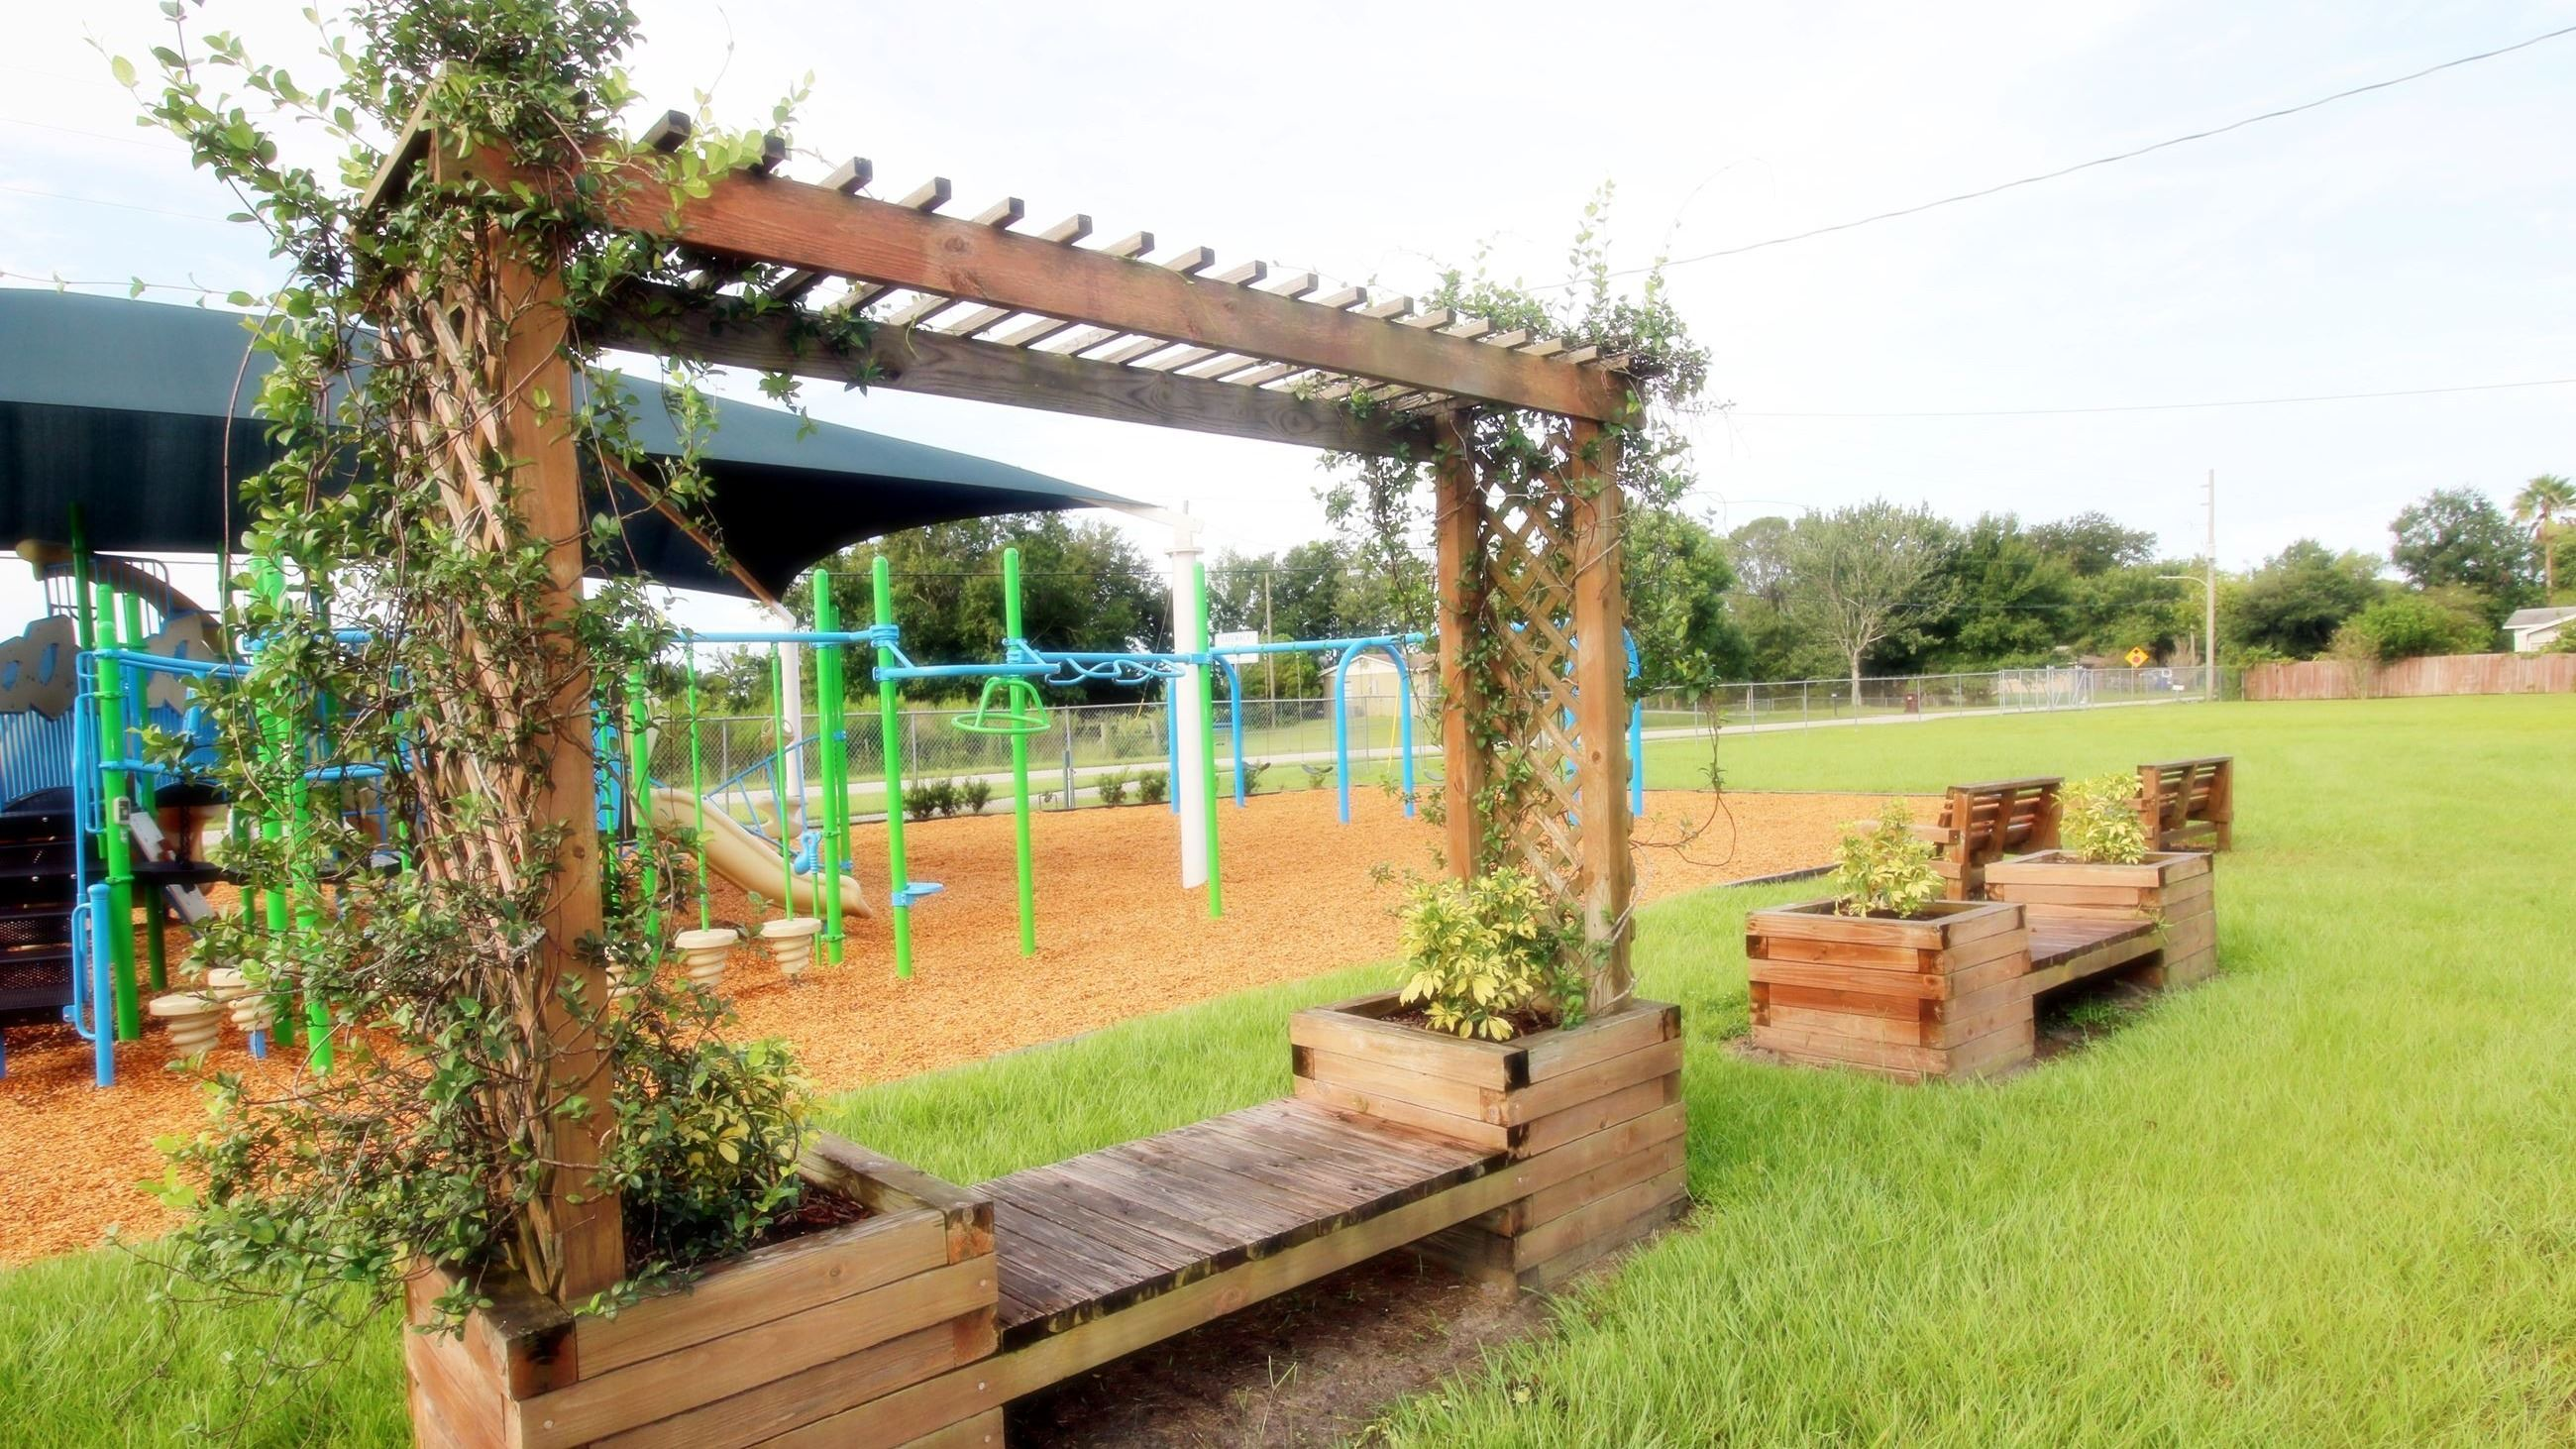 ARBOR BENCH WITH AT PLAYGROUND AT HOPKINS PARK  PHOTO